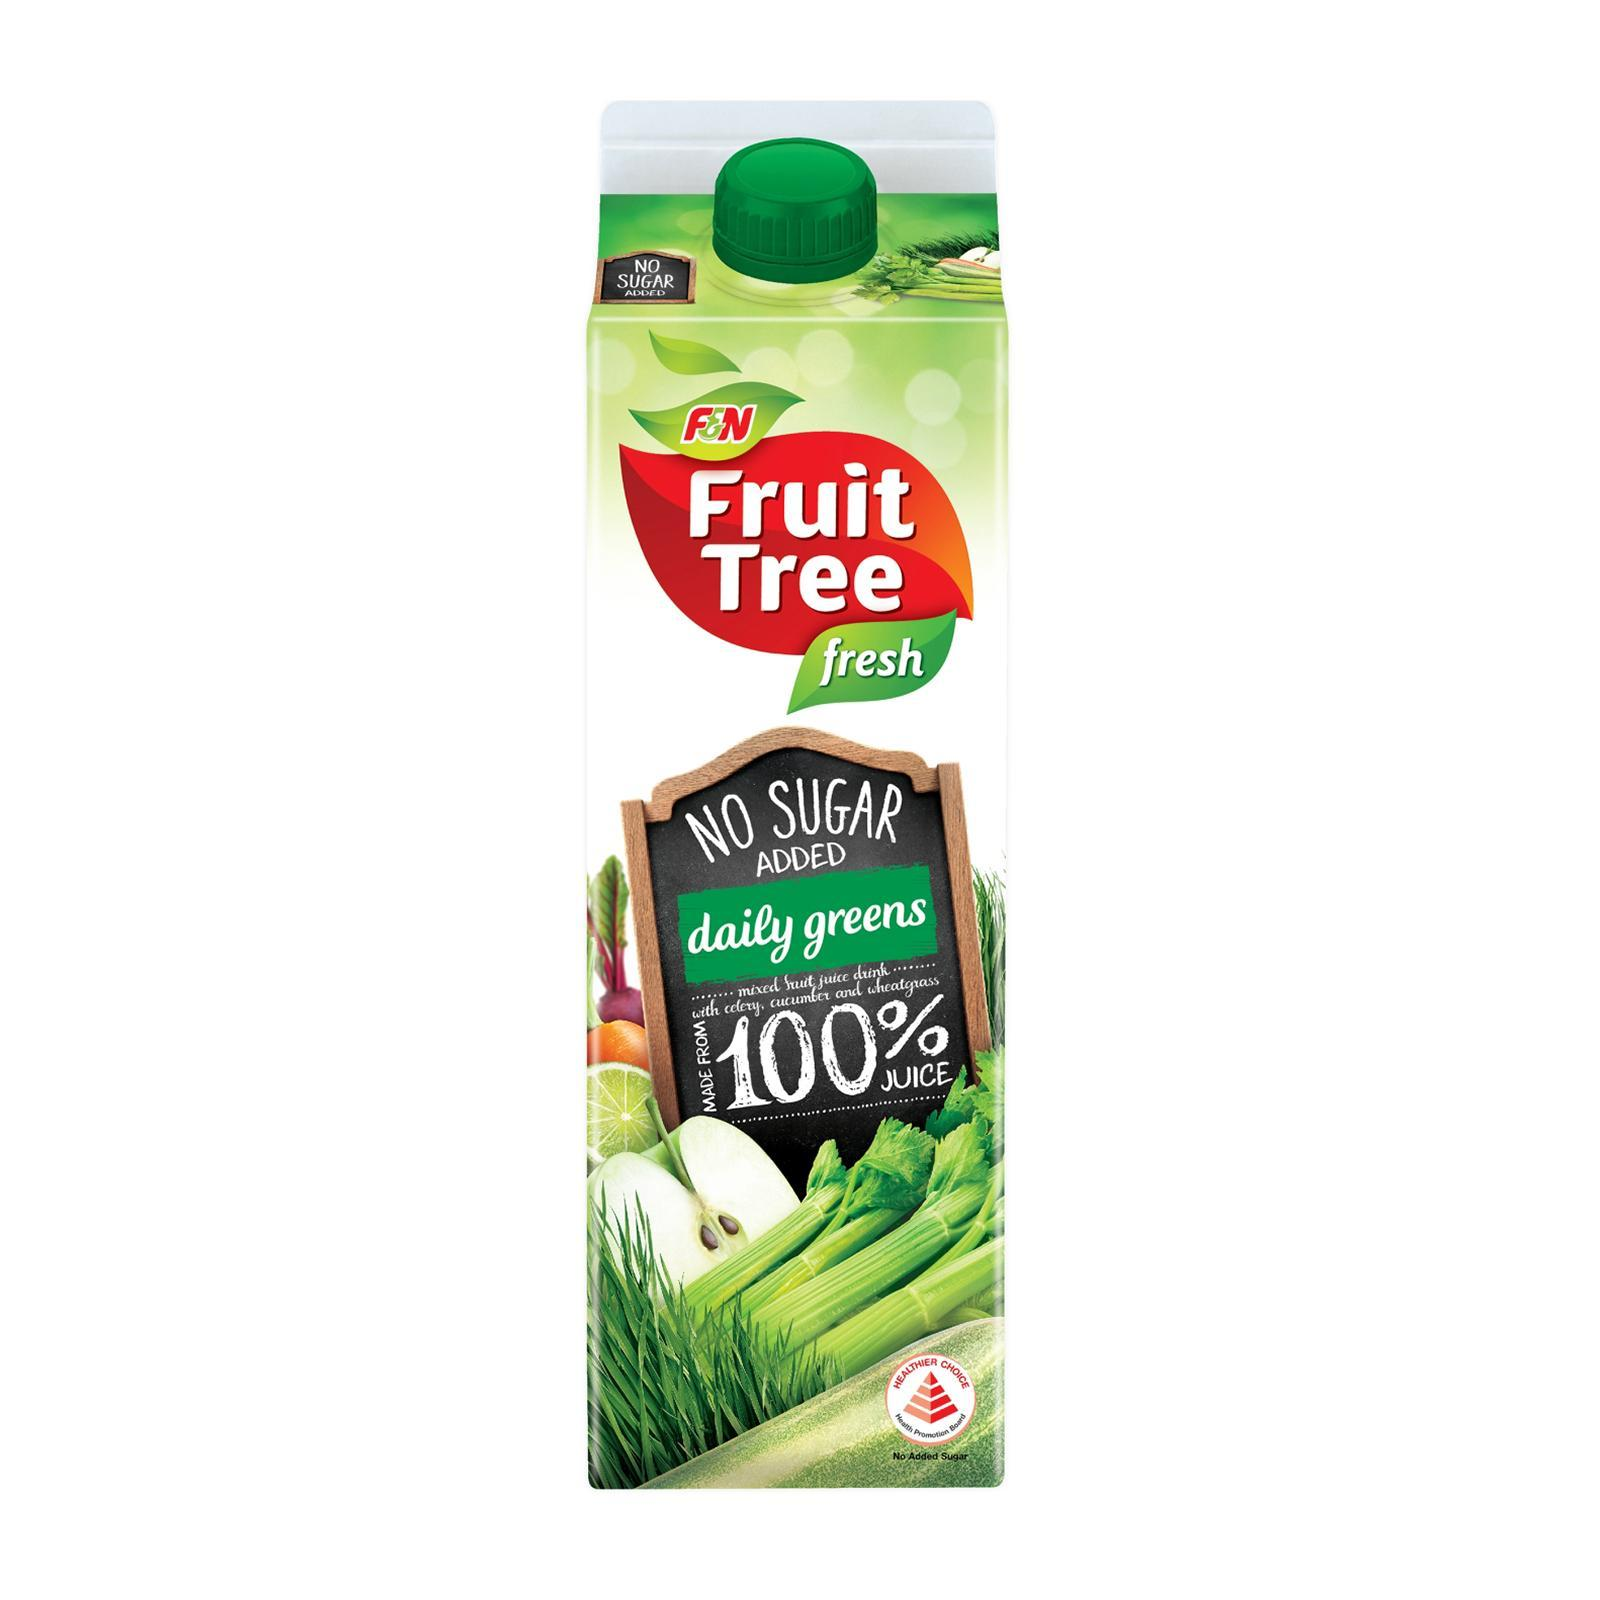 F&n Fruit Tree Fresh Daily Greens Mixed Fruit Juice Drink - No Added Sugar By Redmart.